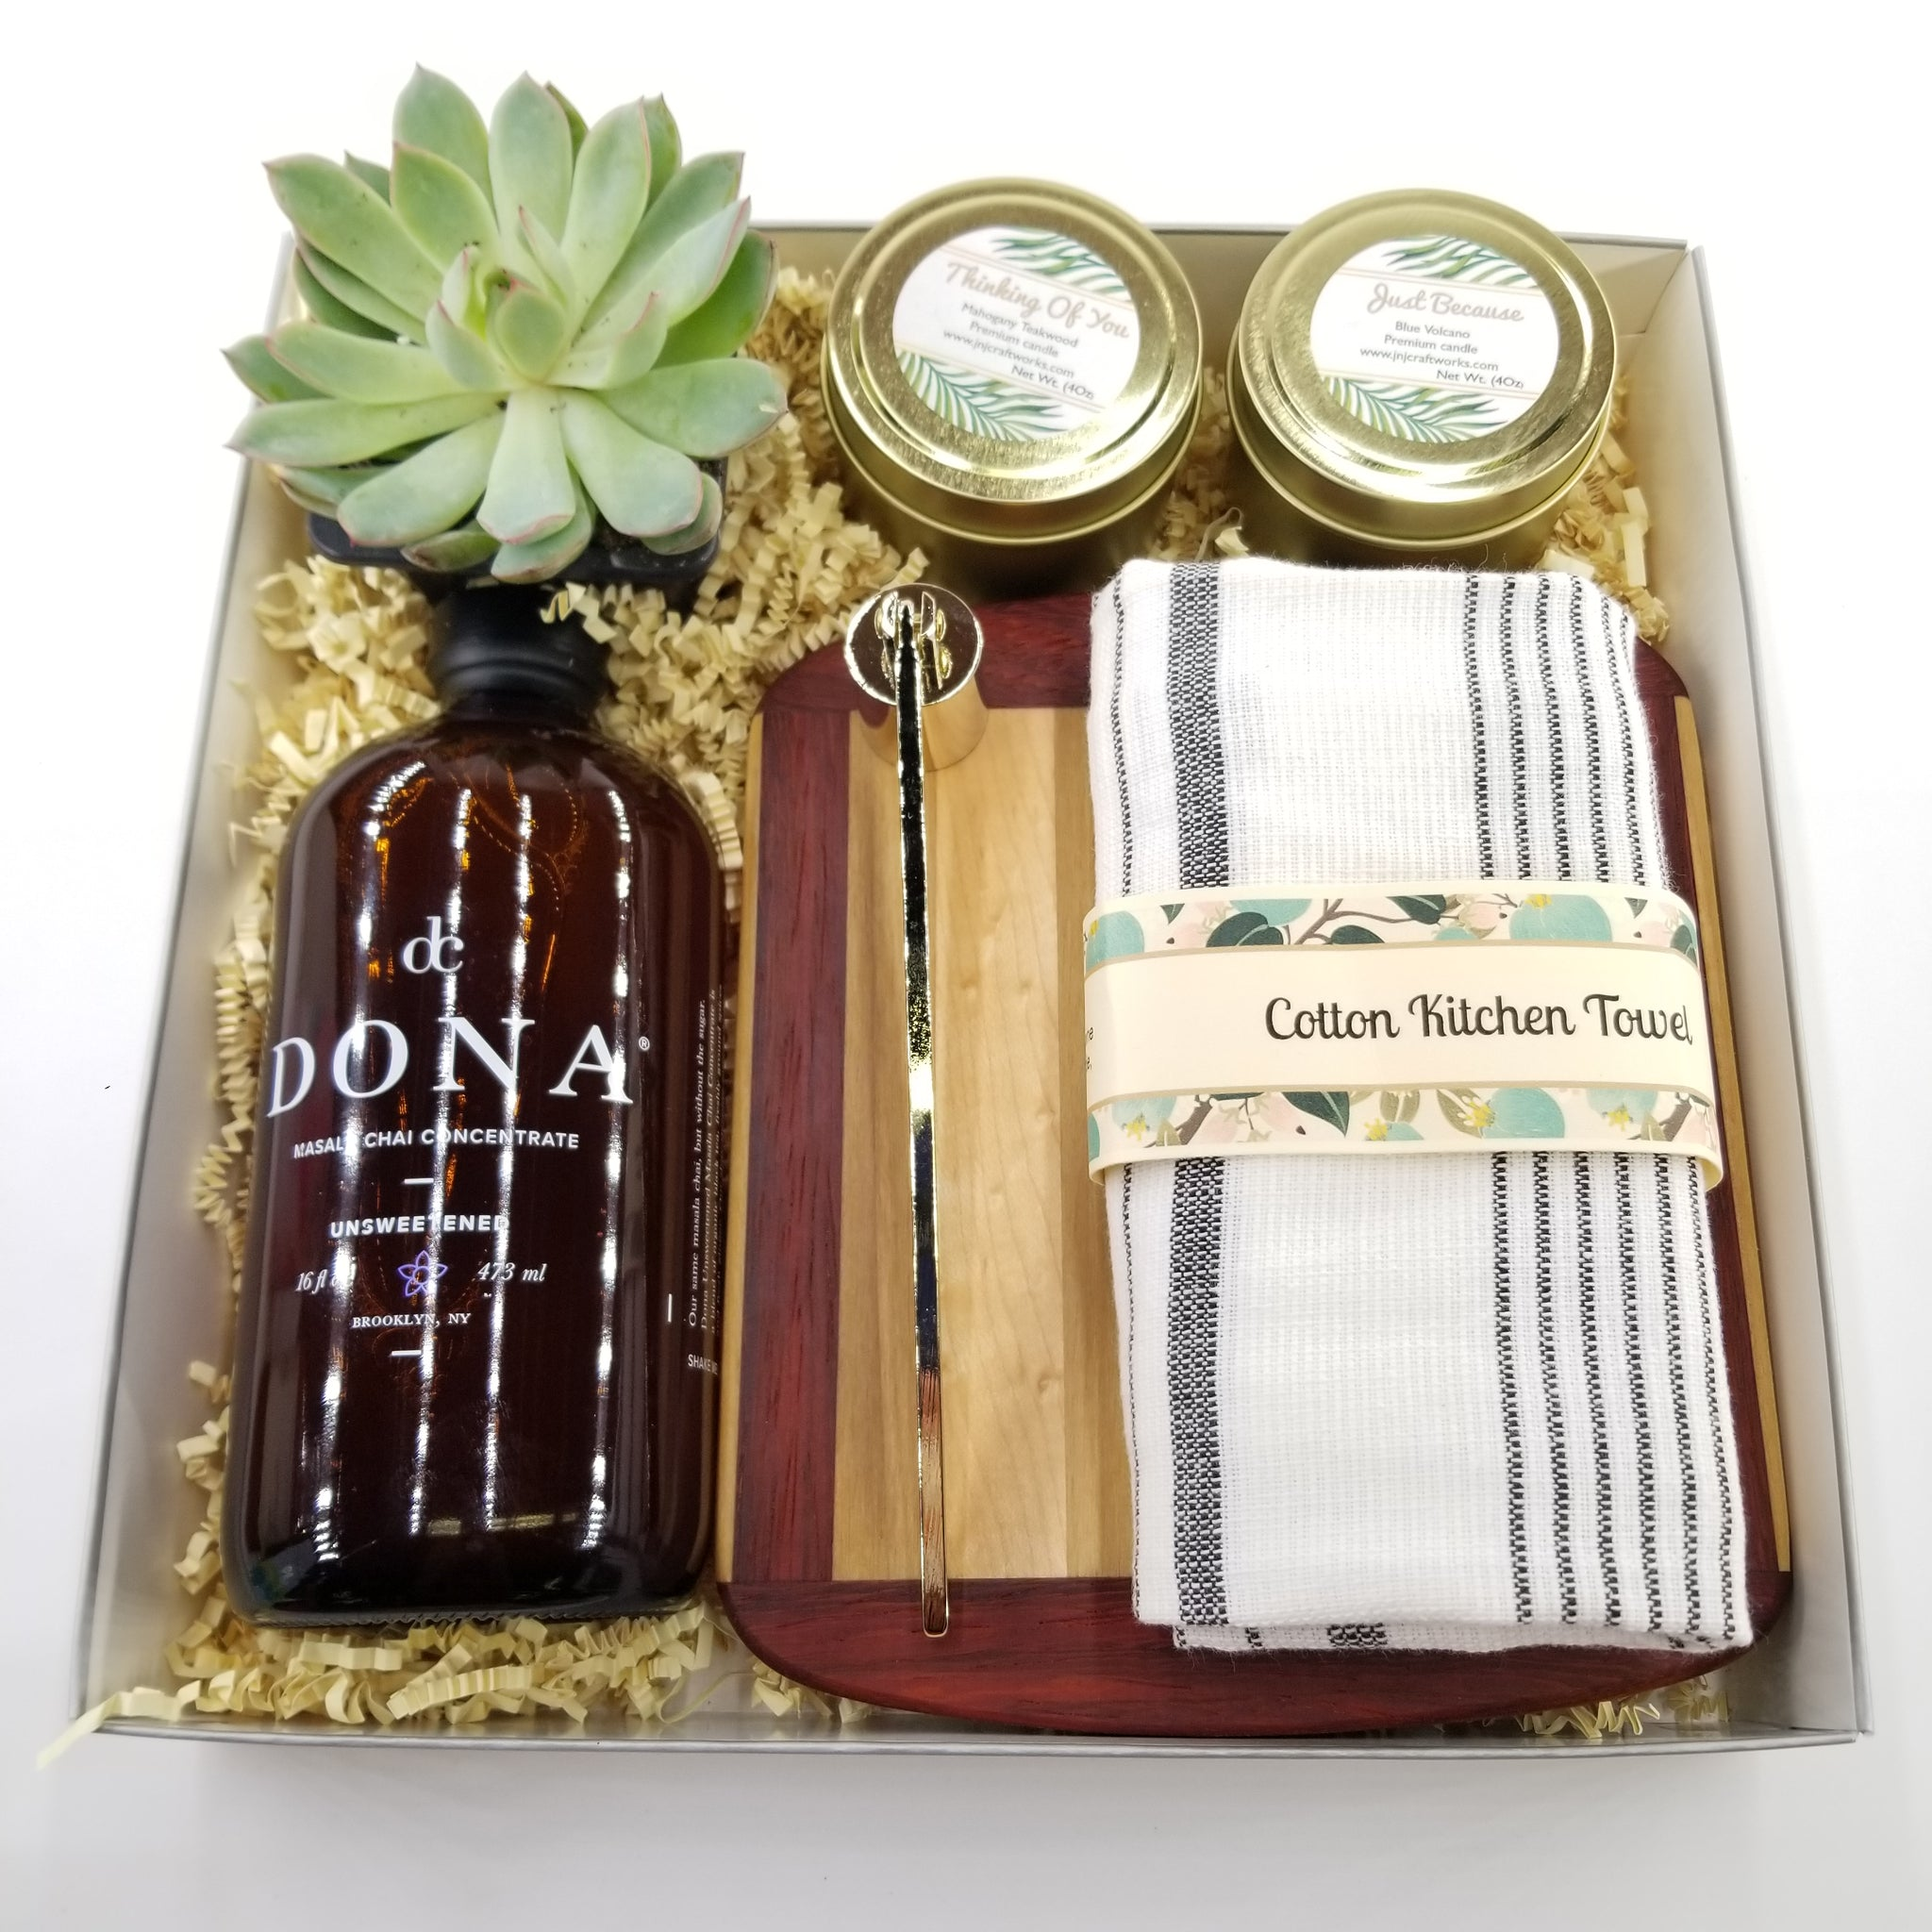 The new beginning gift box